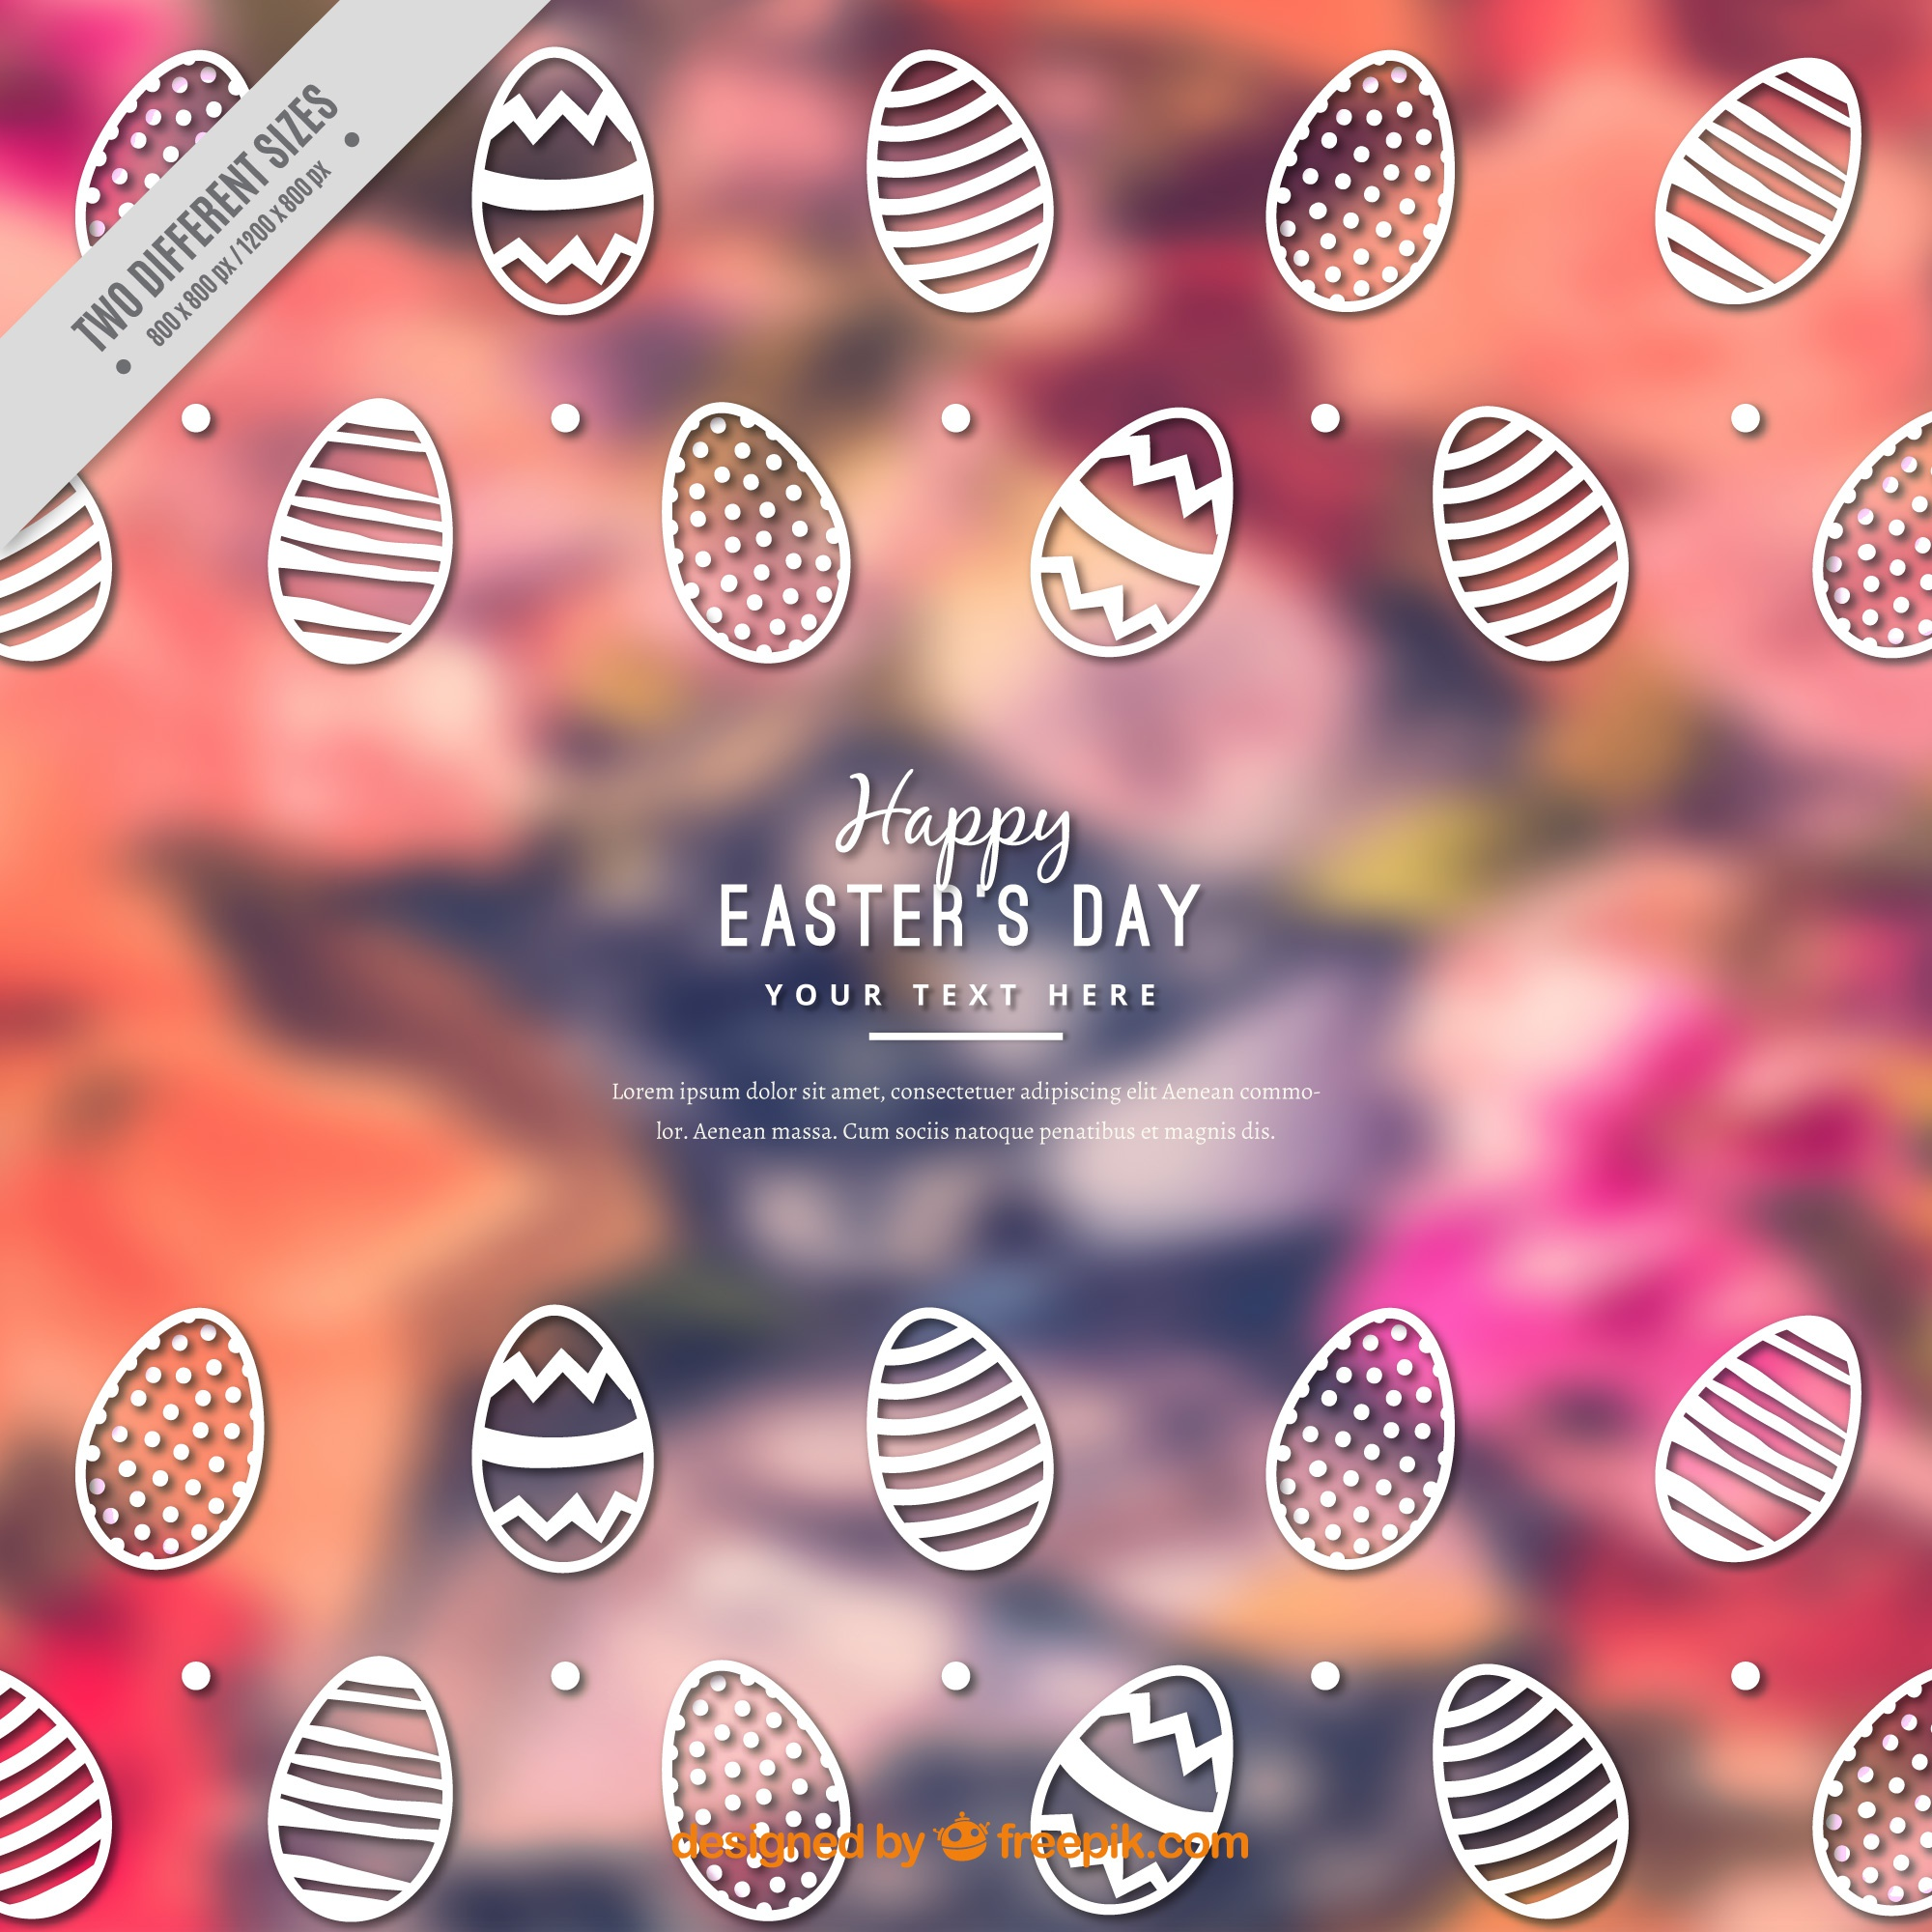 Blurred background with decorative easter eggs